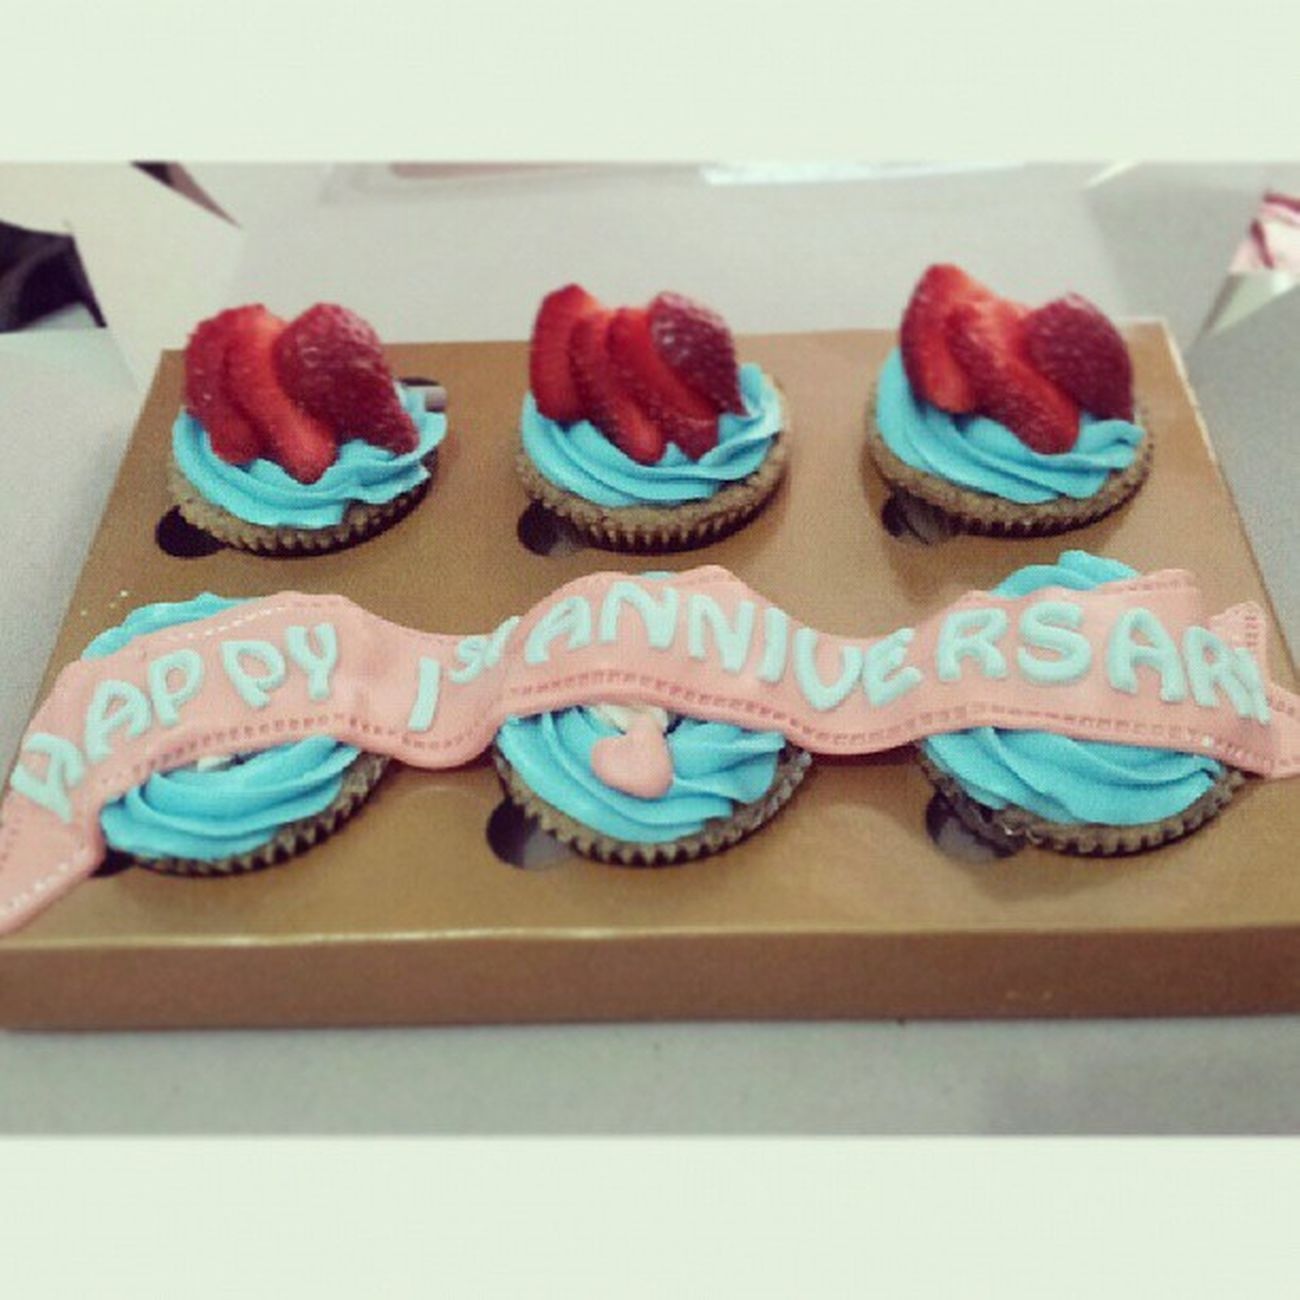 Happy 1st anniv Deasy n his boy ツ. Babiefabulouscakes BFC Ccupcakesdaily Homebaked sweetcakes strawberry likeforlikes ig potd anniversary